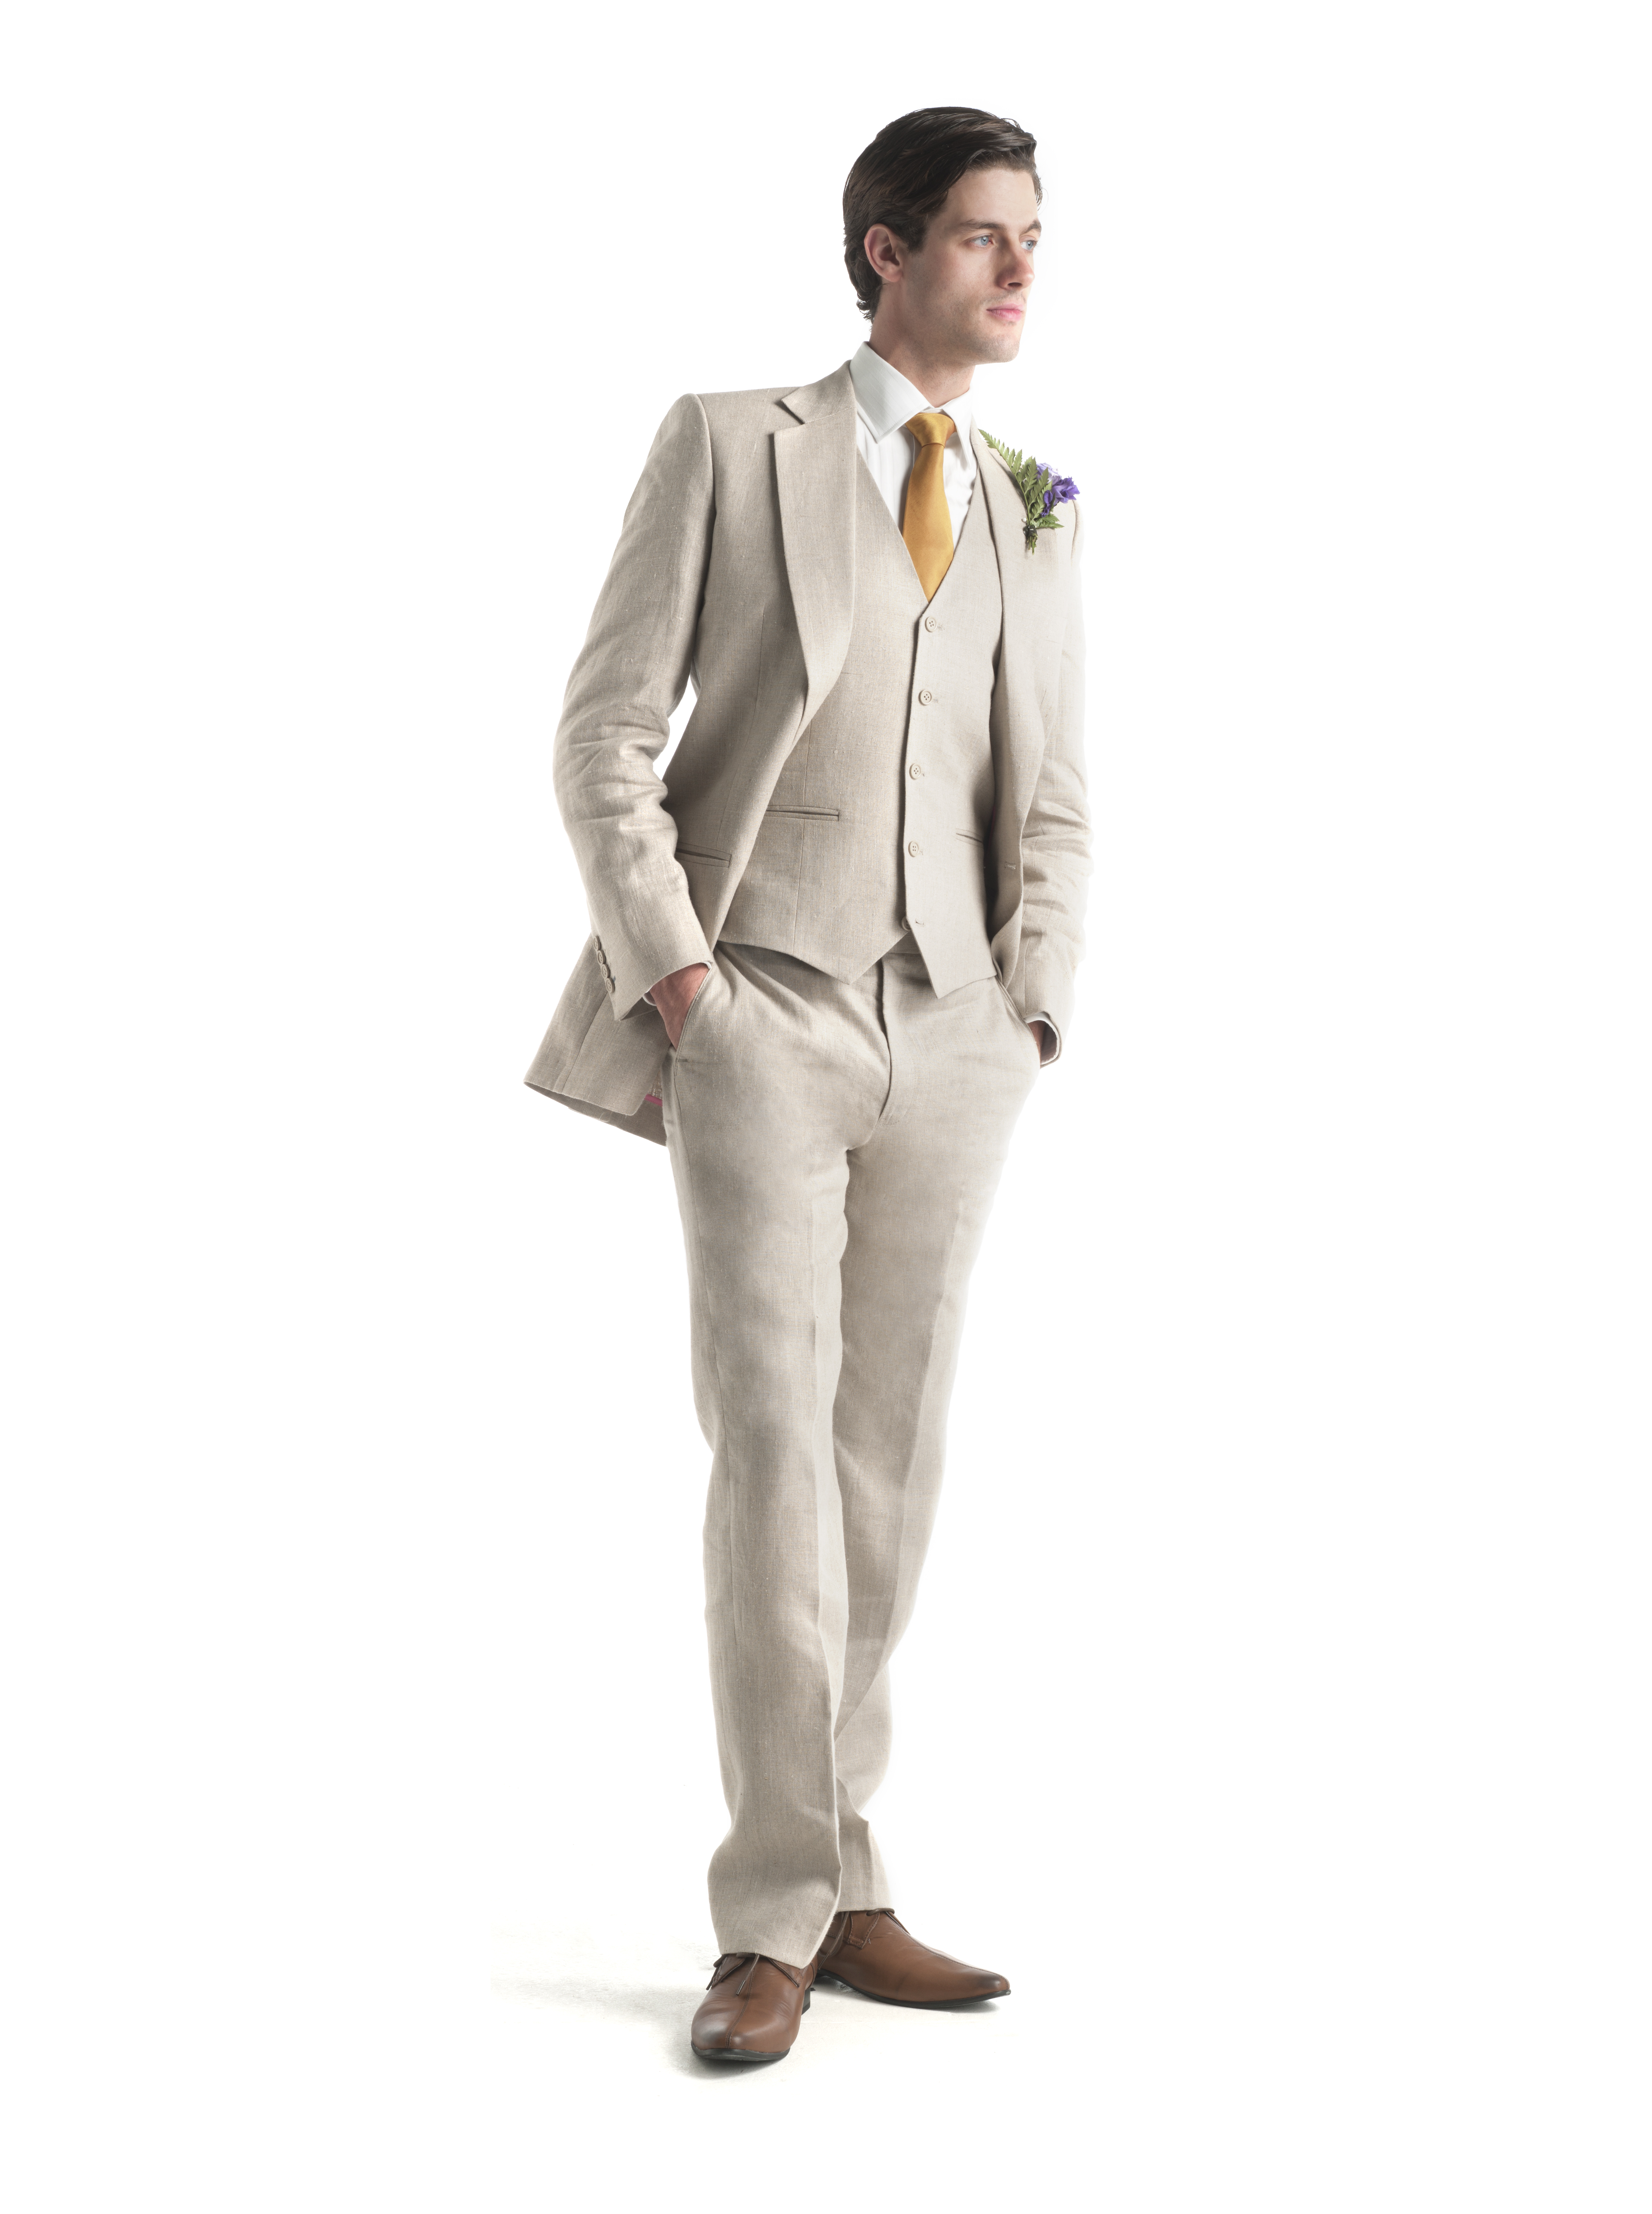 Food Color Combinations All About The Groom Introducing A Suit That Fits Guide To